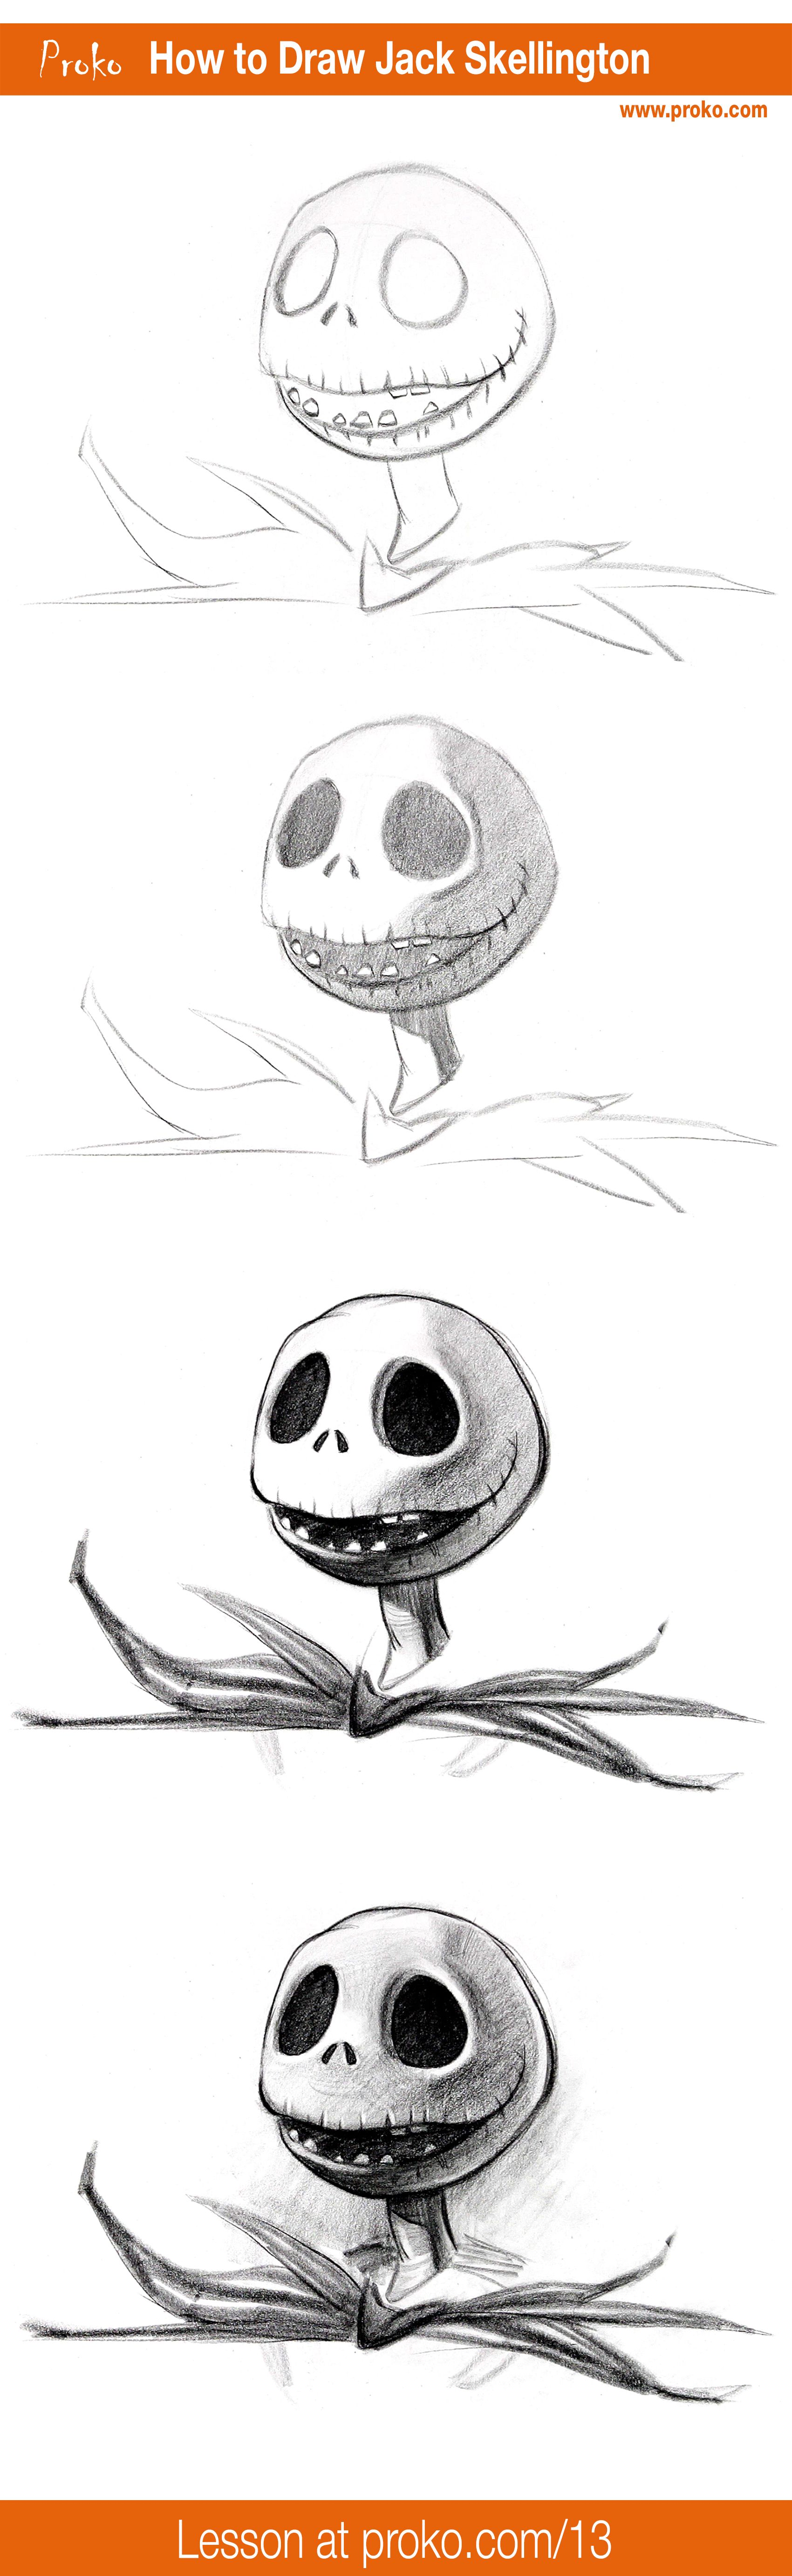 Draw Jack Skellington – Halloween Special | How to draw | Pinterest ...